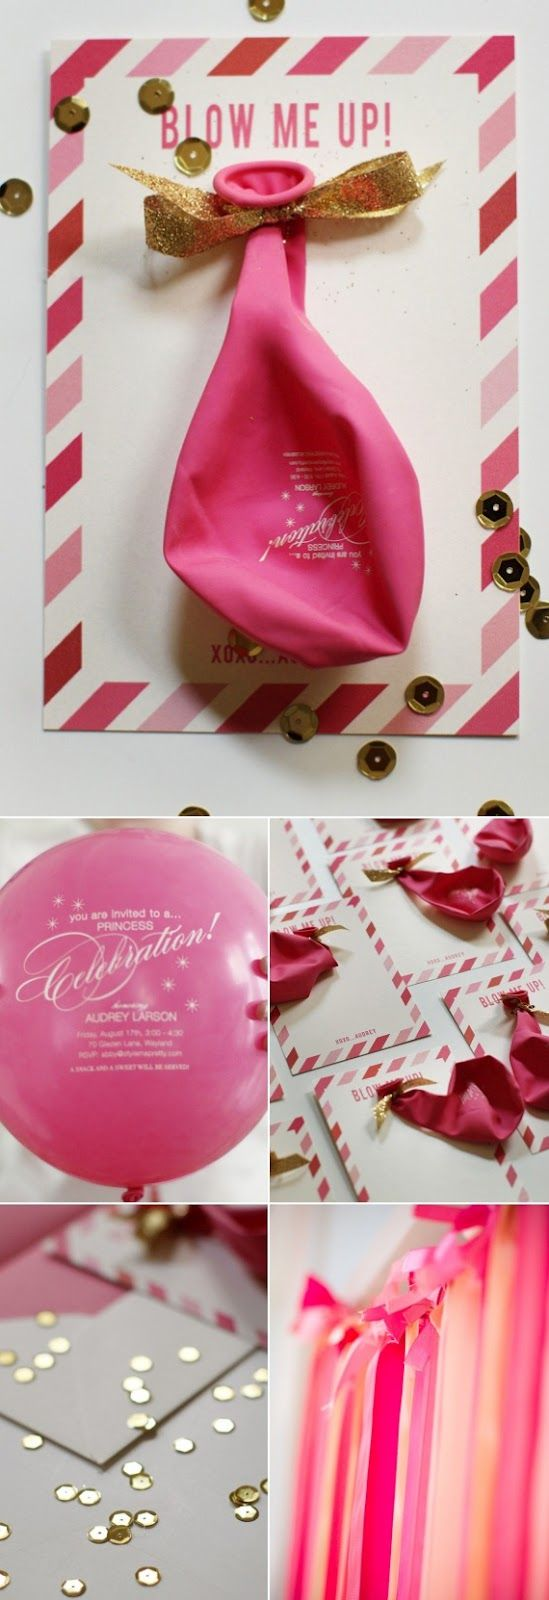 Best 25 Unique invitations ideas – Unique Party Invitation Ideas